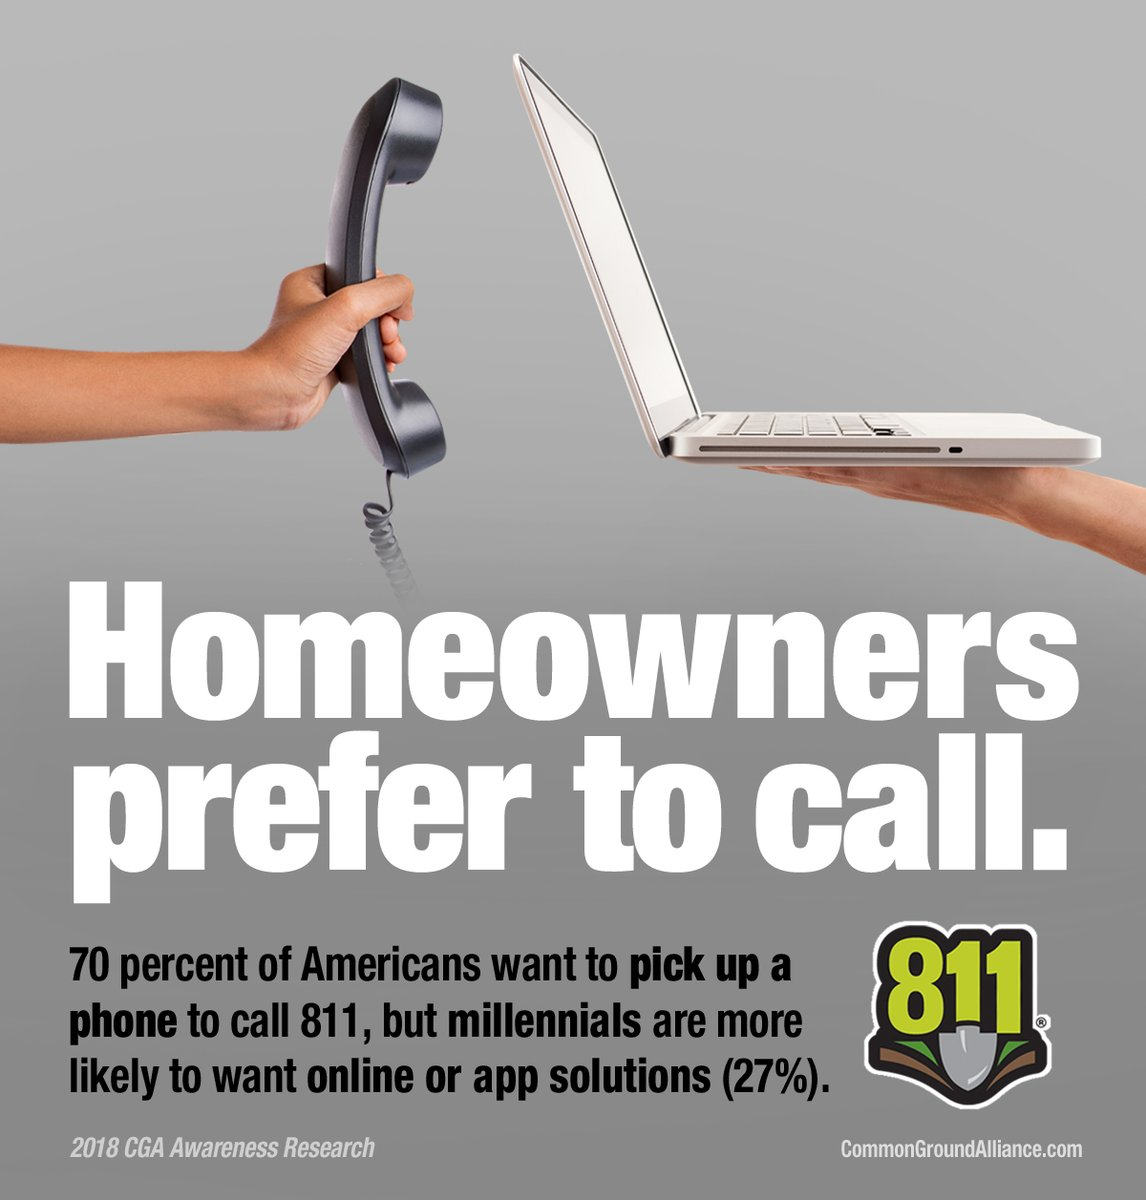 test Twitter Media - Have you made the call? Make a FREE call to 811 to have your underground utility lines marked and help protect against injury and costly property damage. #Call811 https://t.co/83QGEBe3uq